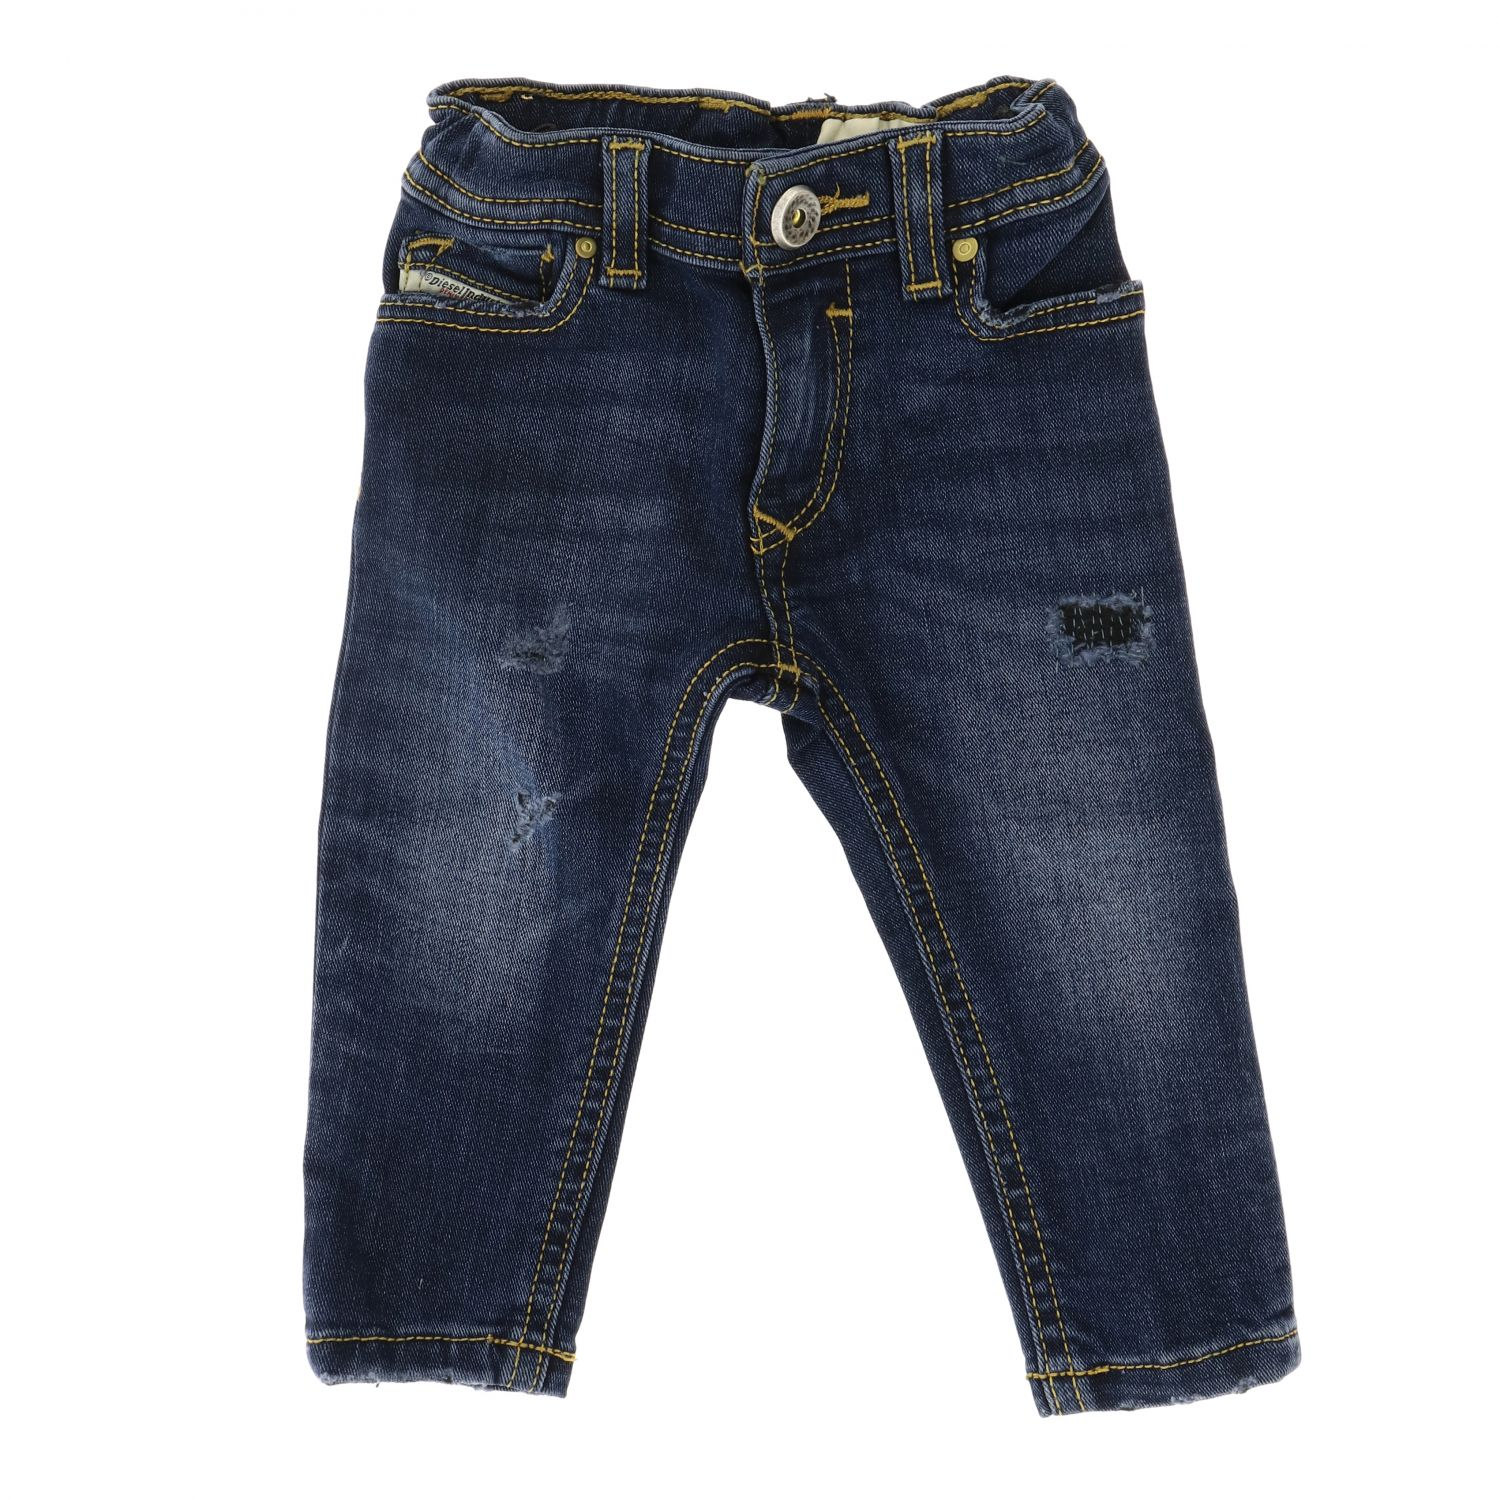 Sleenker Stretch Diesel Jeans aus Denim blau 1